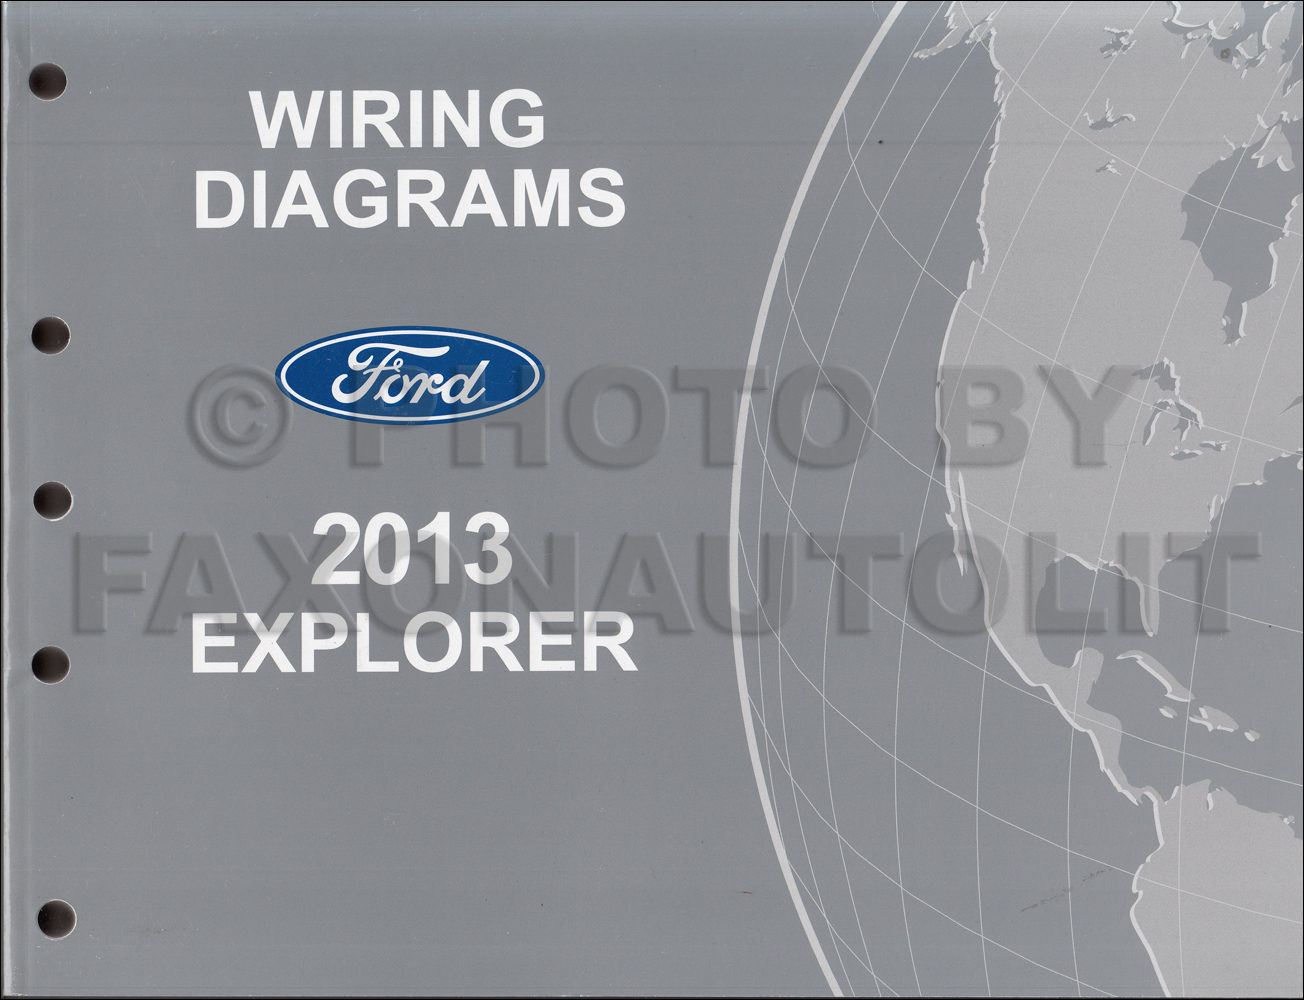 Old Snapper Wiring Harness Free Discovery World Crystal Growing Kit Wright Stander Parts Diagram Engine And 2013fordexplorerowd